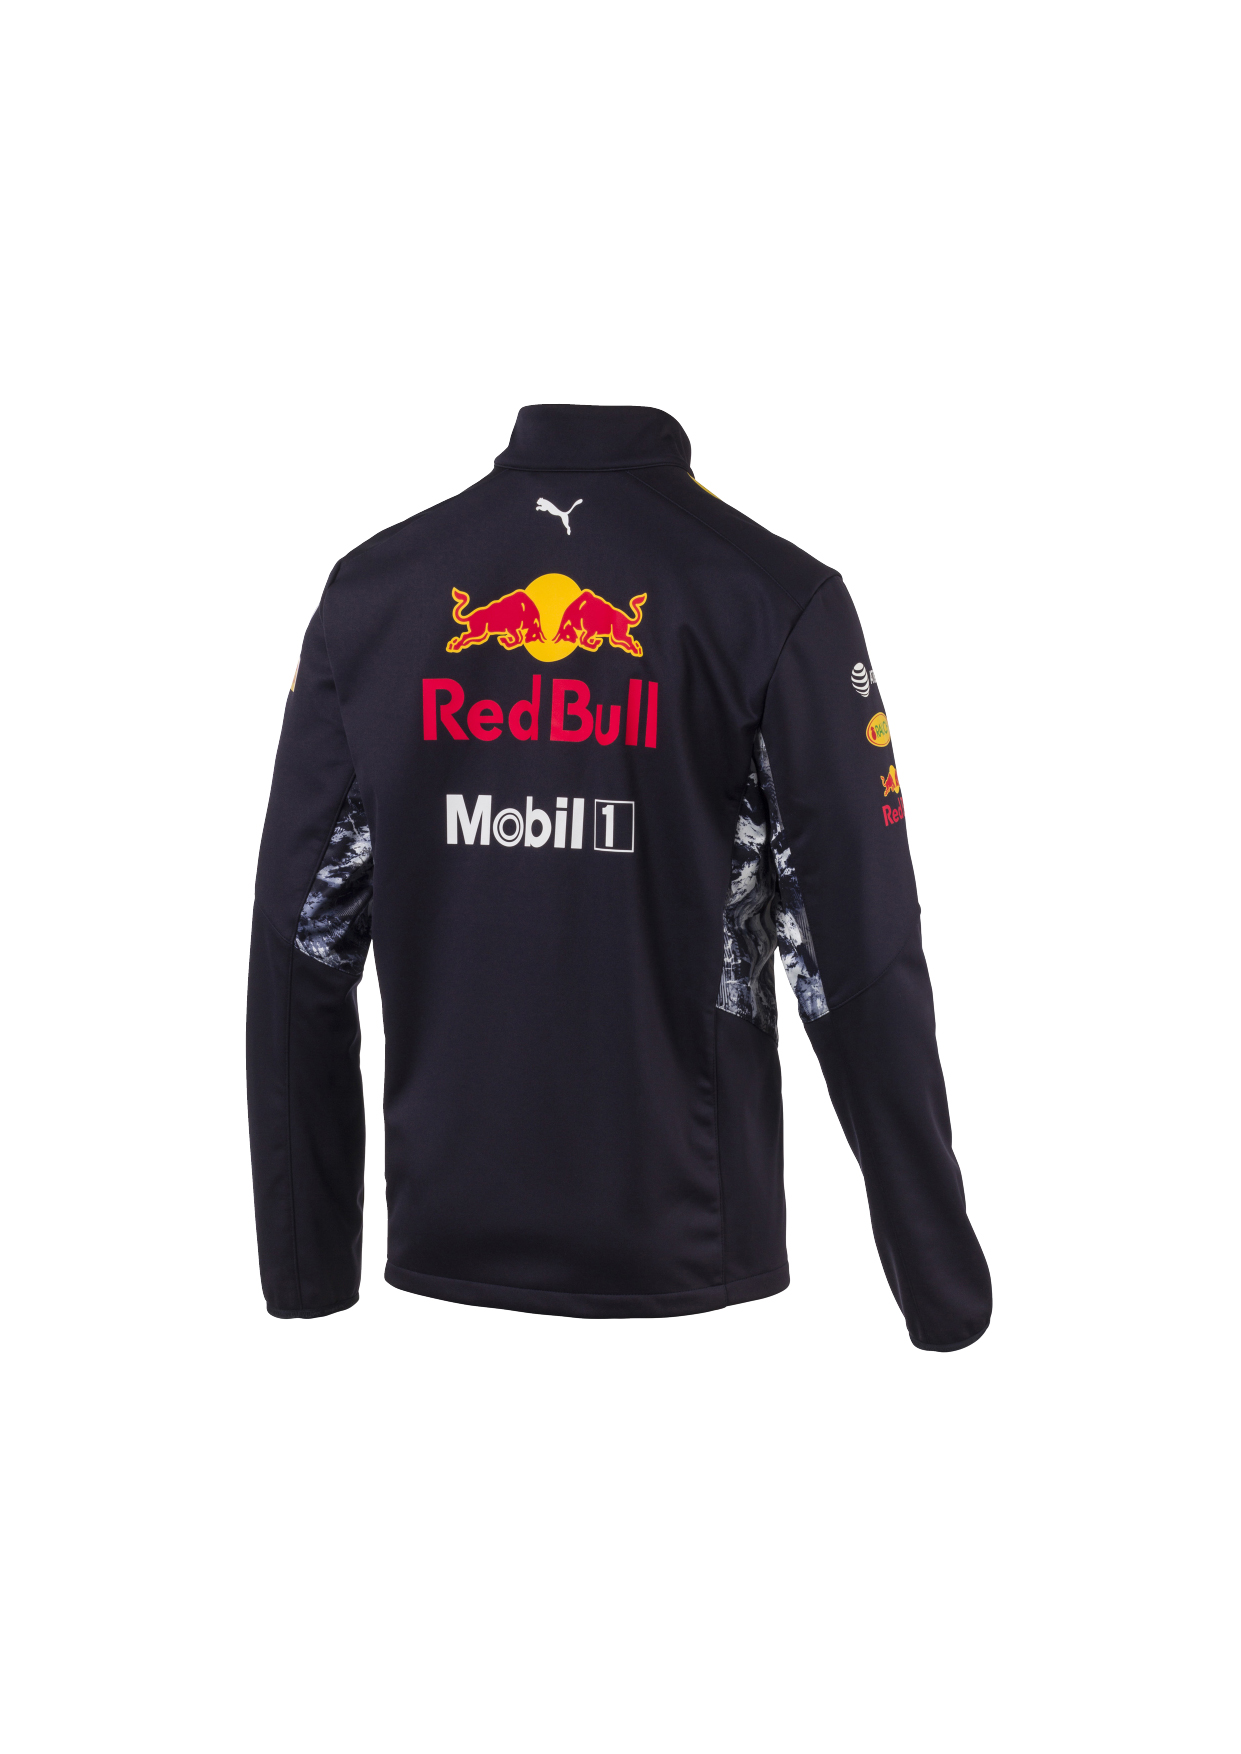 Red Bull clipart rbr Racing Racing Race Jacket Shell